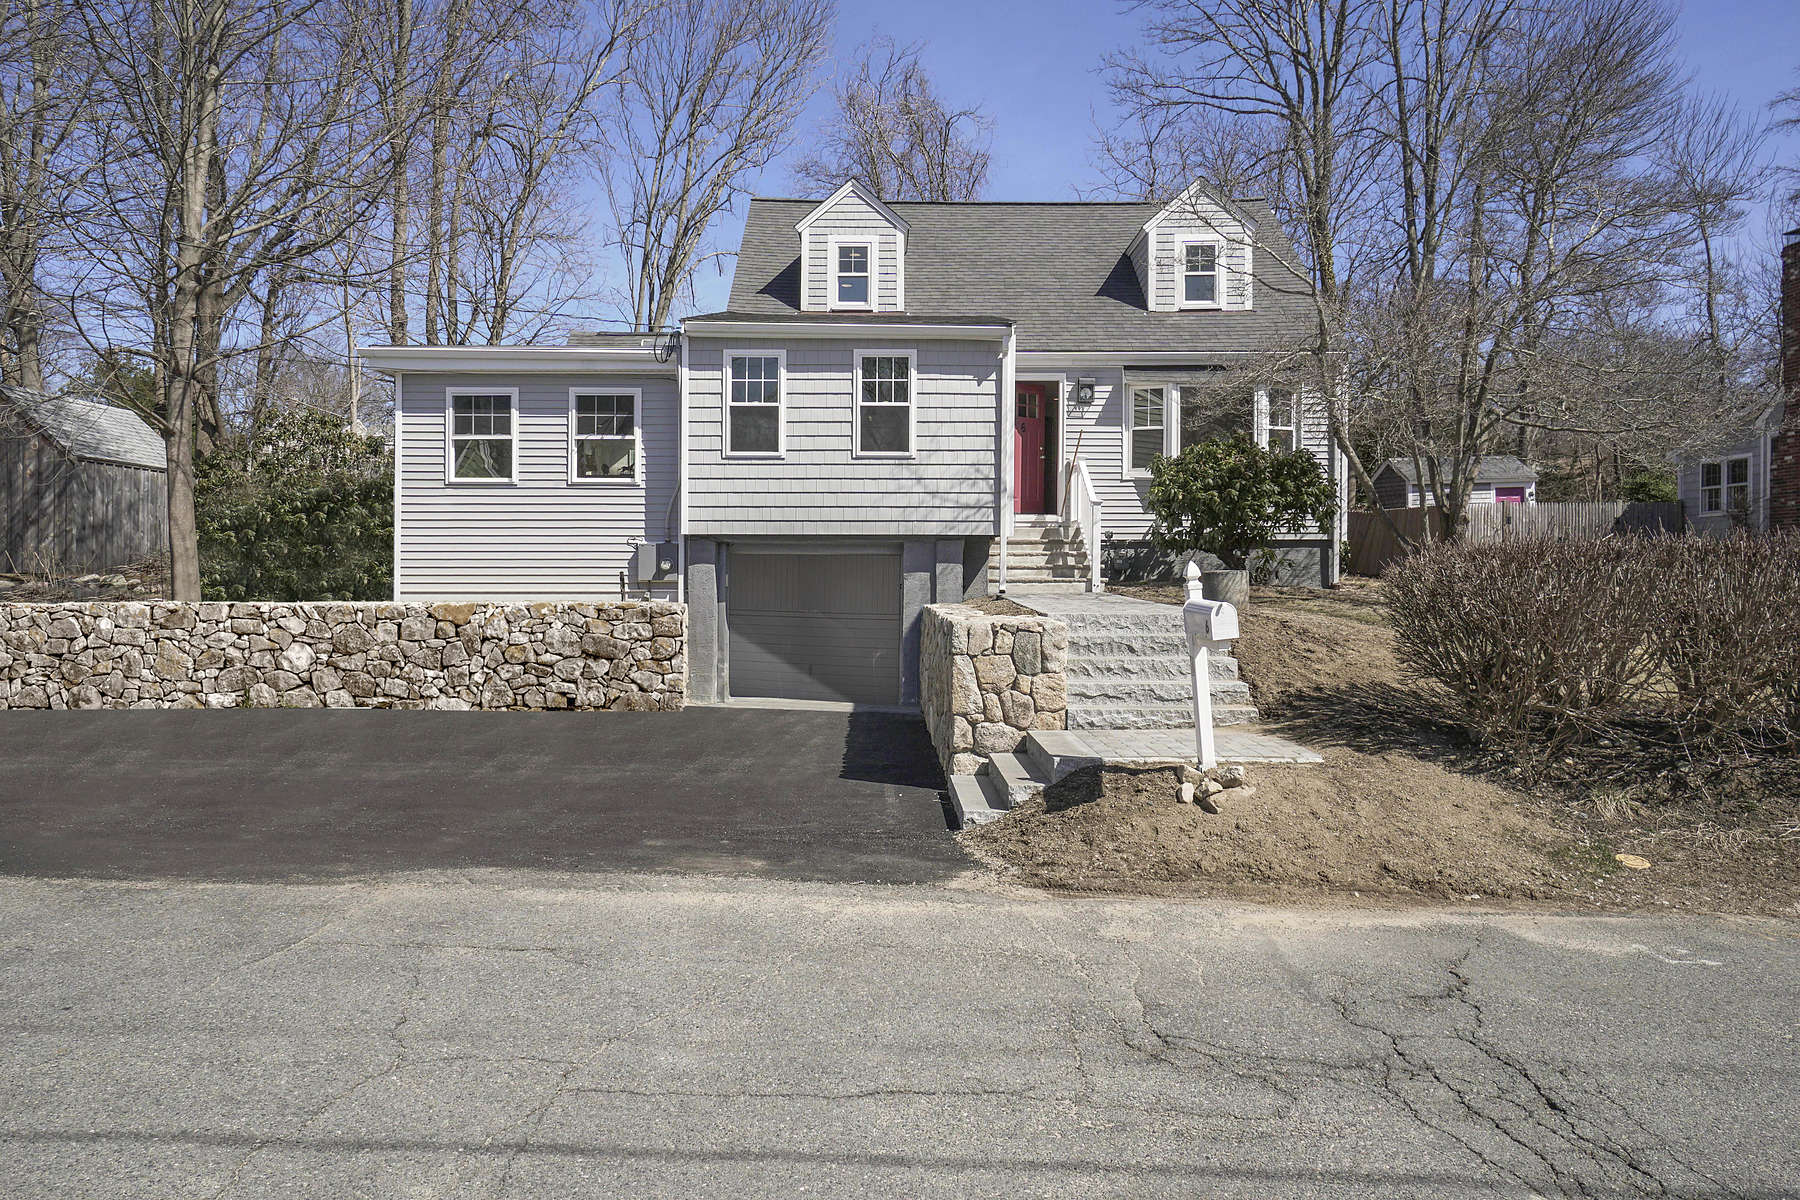 Single Family Home for Active at Cohasset Cape 6 Buttonwood Ln Cohasset, Massachusetts 02025 United States